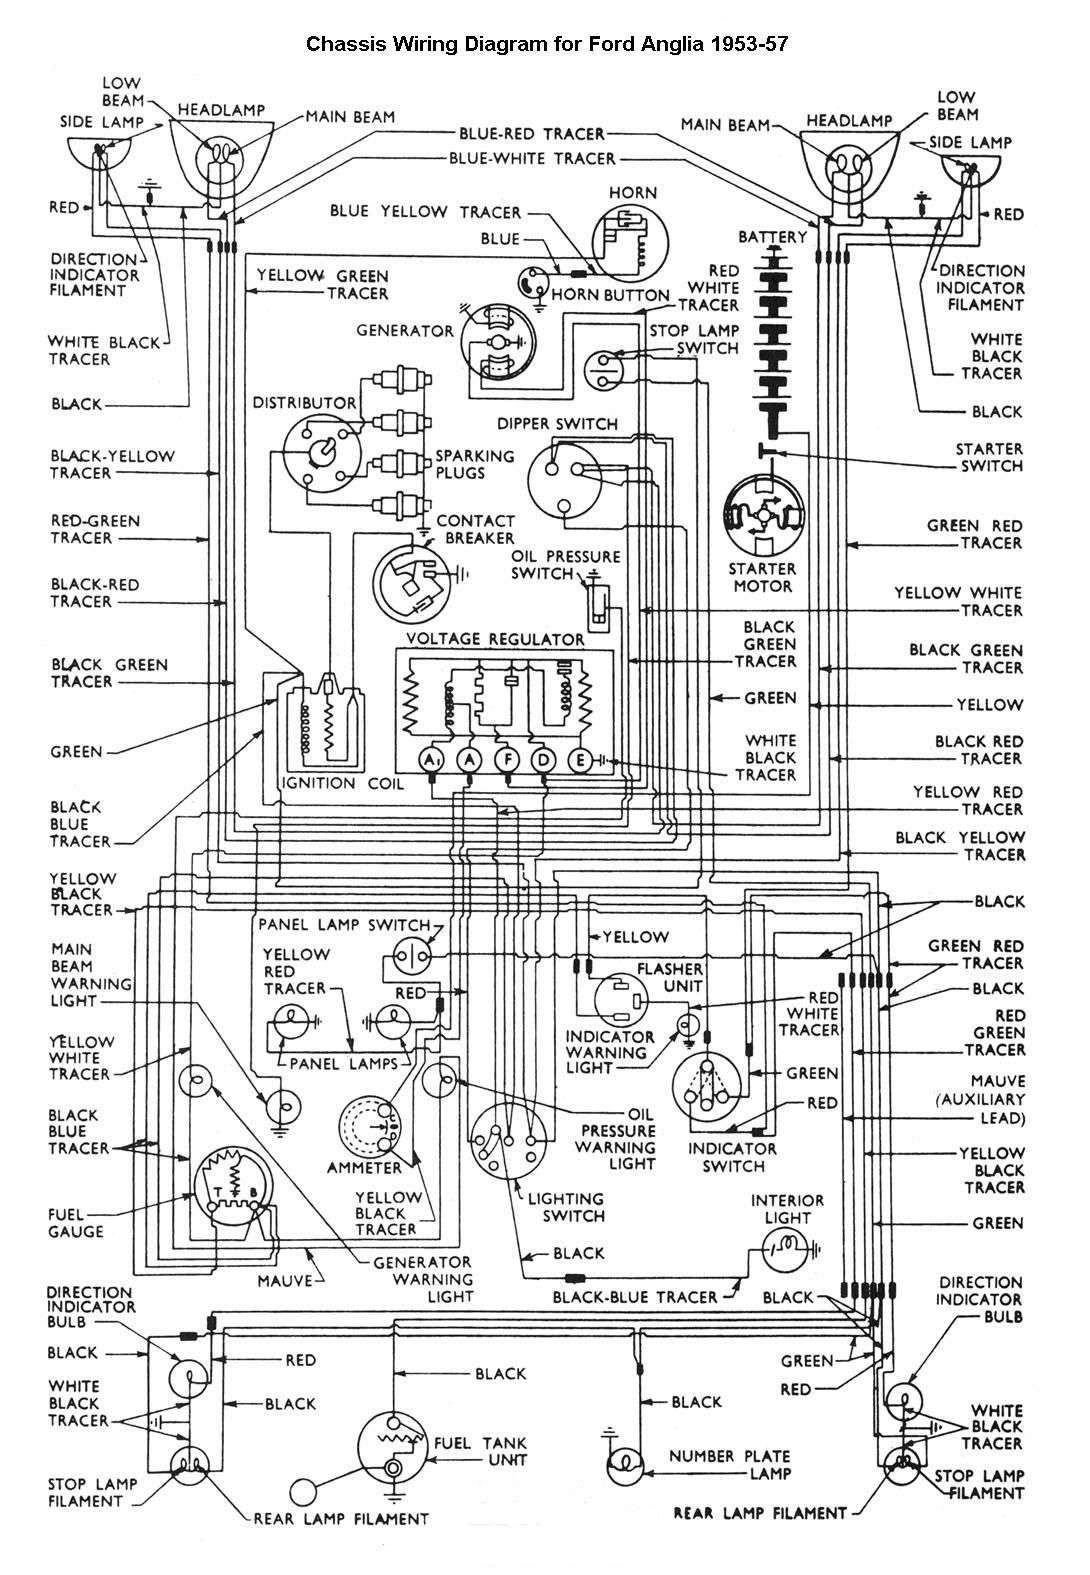 Wiring Diagram Cars Trucks Wiring Diagram Cars Trucks Truck Horn Wiring Wiring Diagrams Electrical Wiring Diagram Electrical Diagram Electrical Wiring